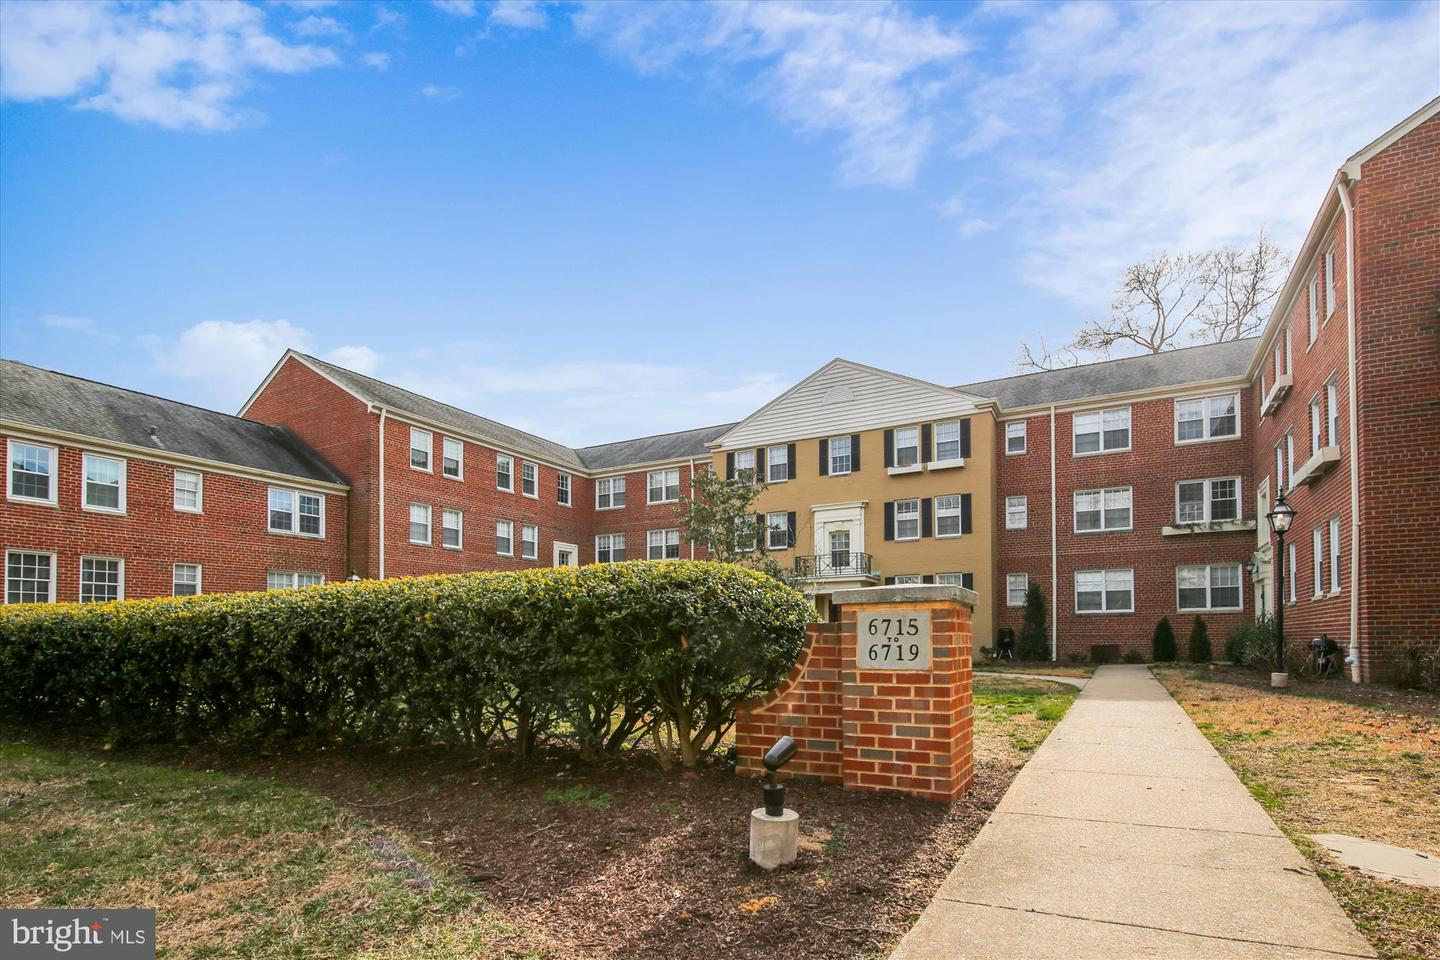 6719 WAKEFIELD DRIVE, ALEXANDRIA, Virginia 22307, 2 Bedrooms Bedrooms, ,1 BathroomBathrooms,Residential,For Sale,Belle View Condos,WAKEFIELD,2,VAFX1183900